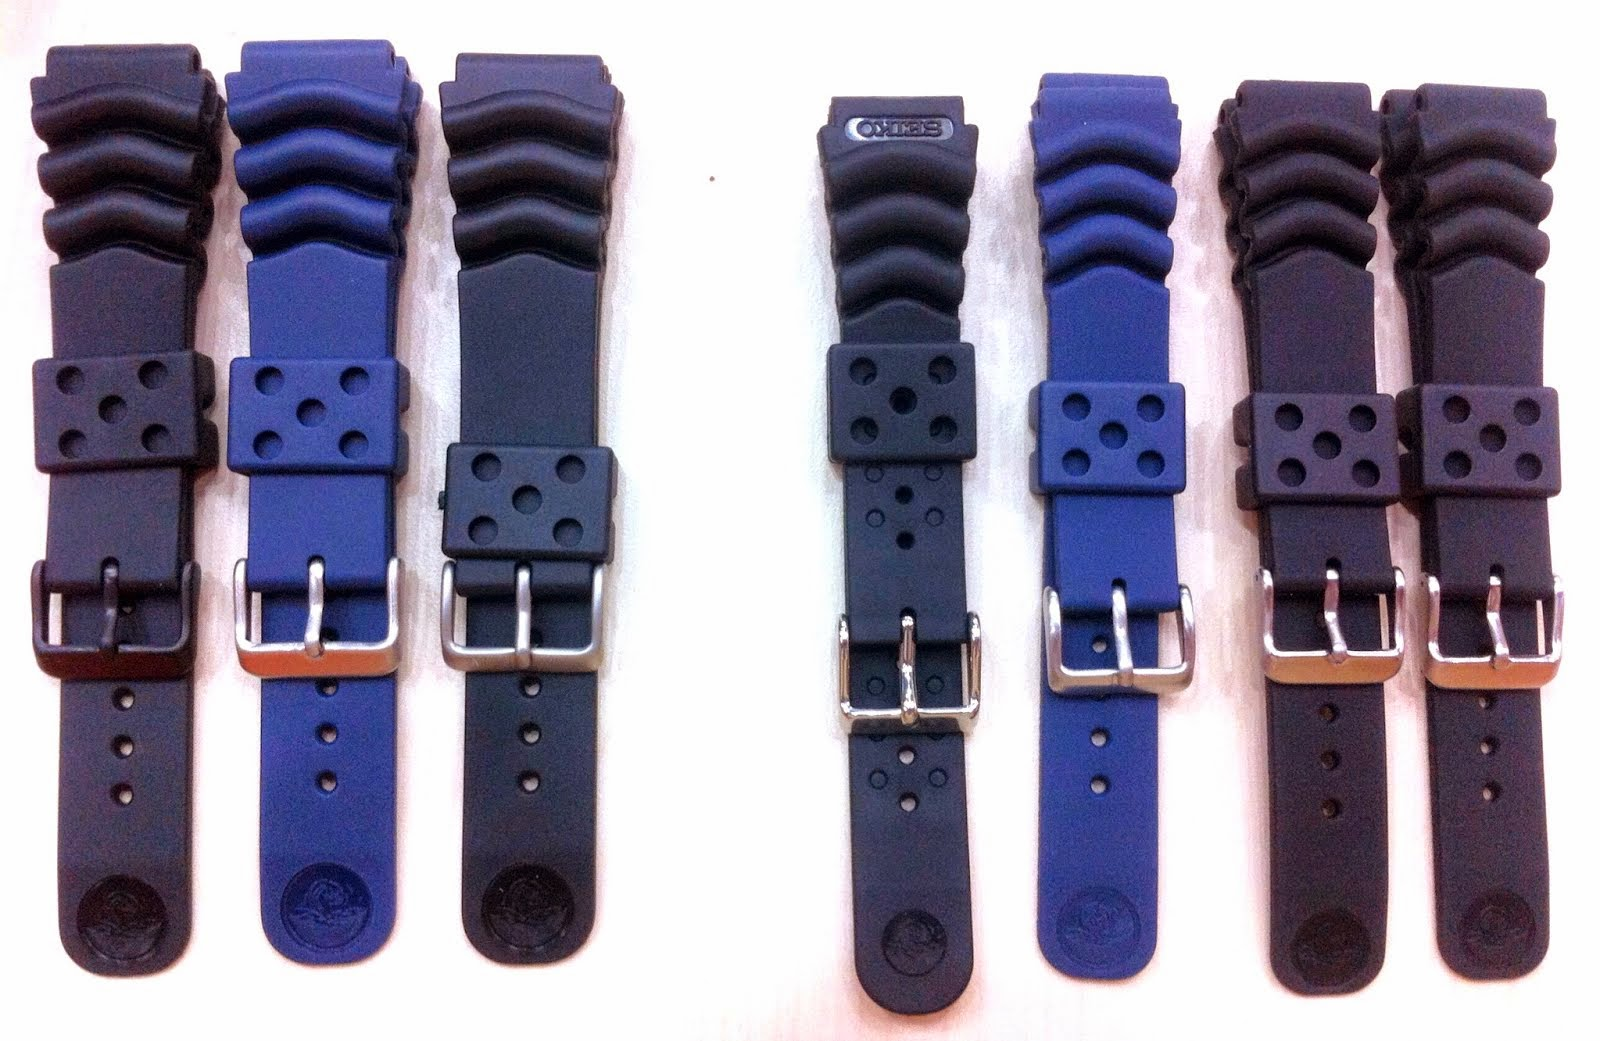 Original Rubber BLUE & BLACK, 22mm & 20mm